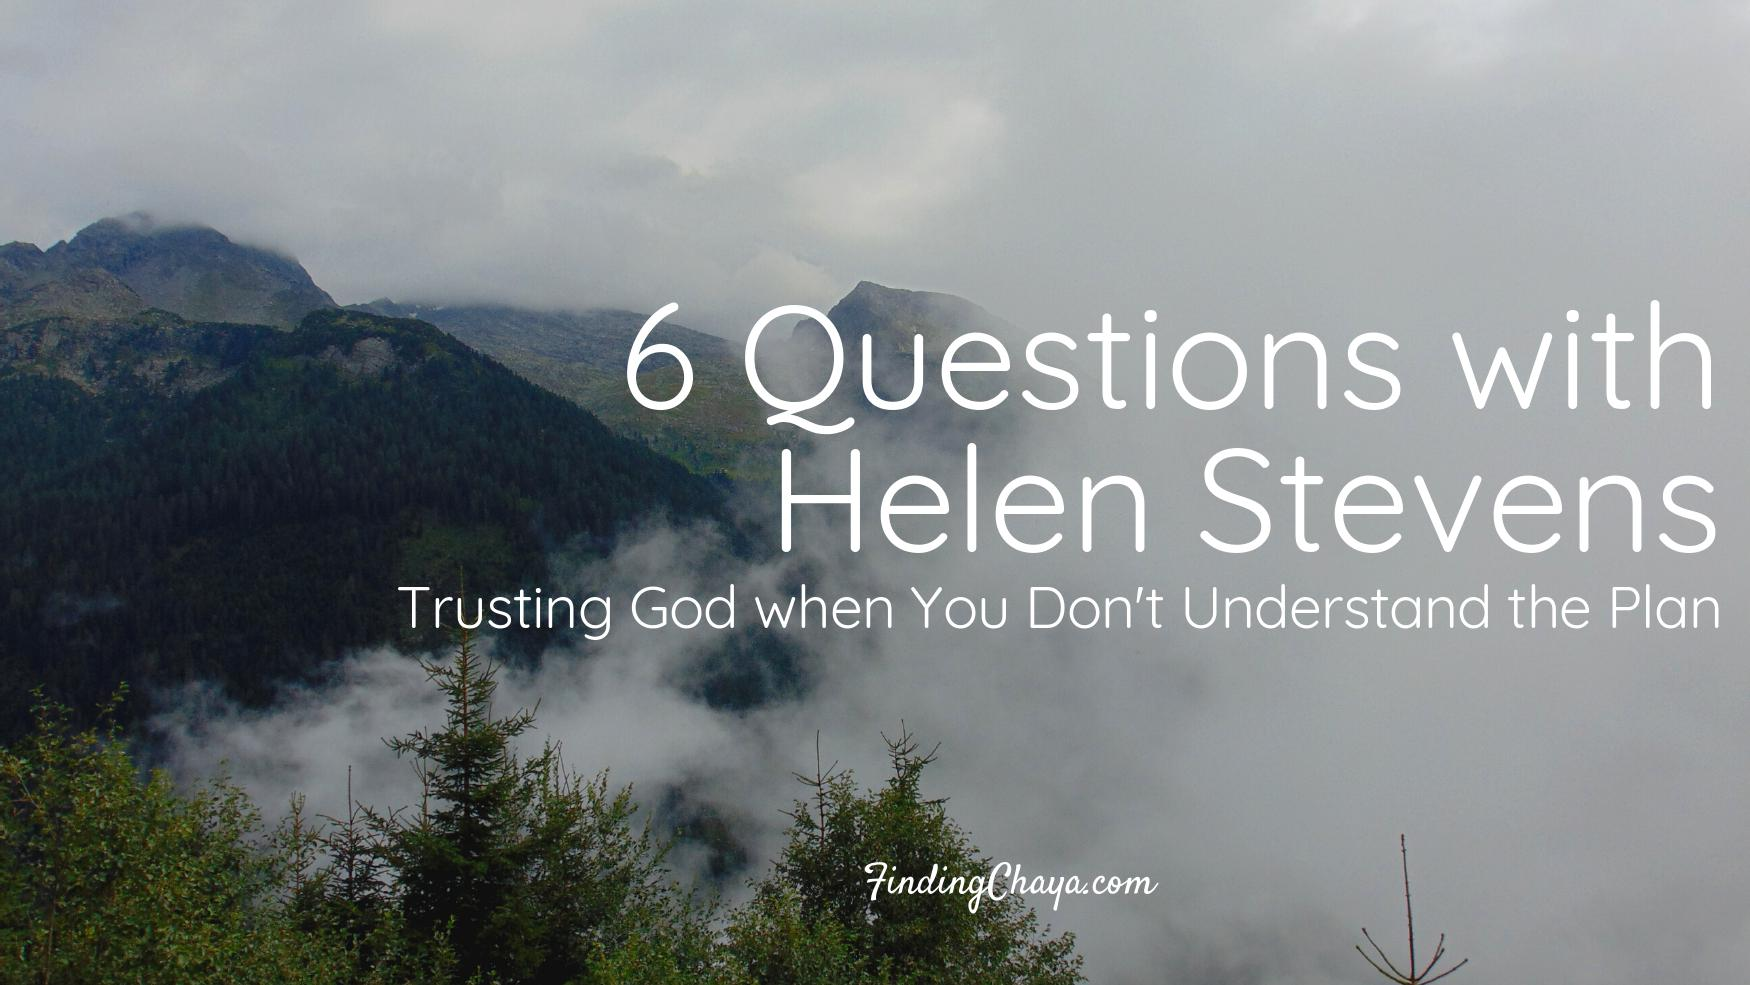 6 Questions with Helen Stevens: Trusting God when You Don't Understand the Plan